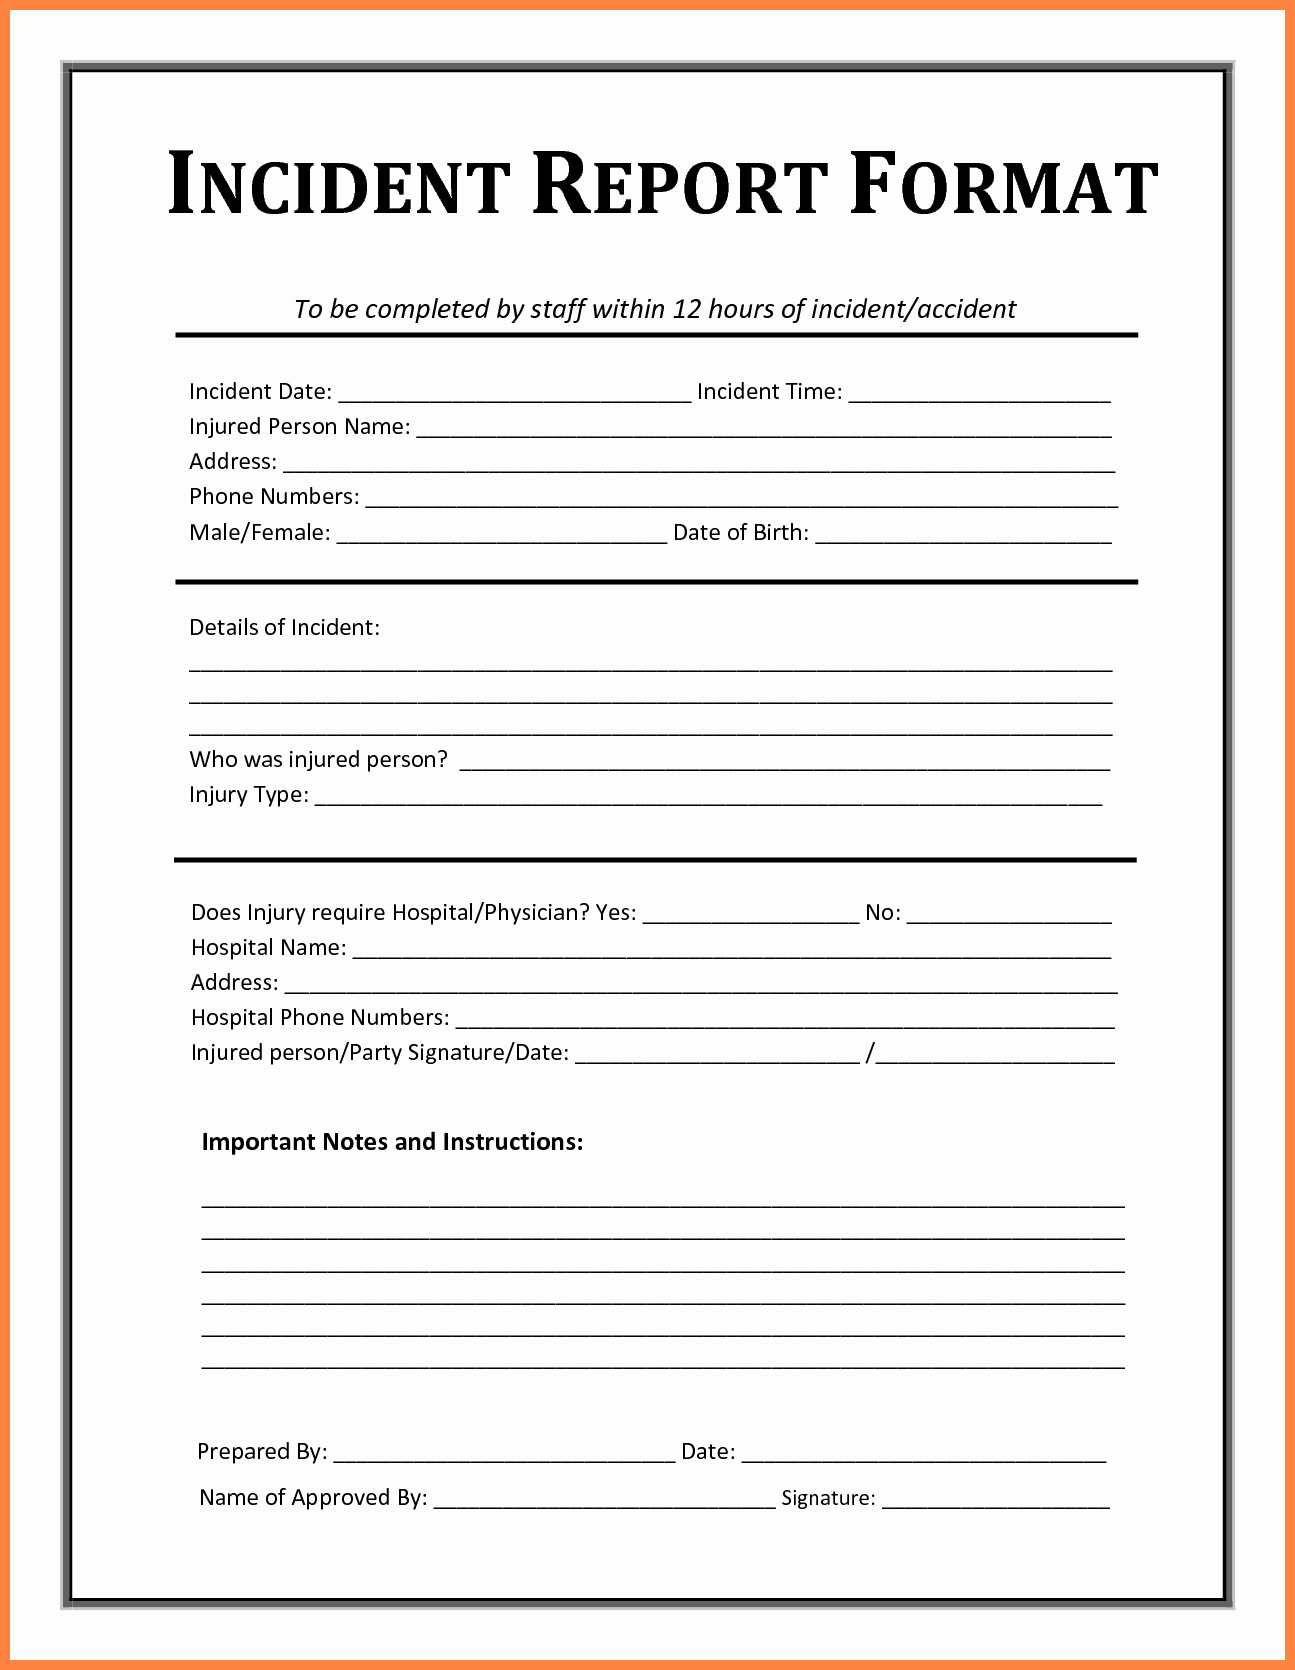 Incident Report Template Microsoft Best Of 6 Incident Report Template Microsoft Word